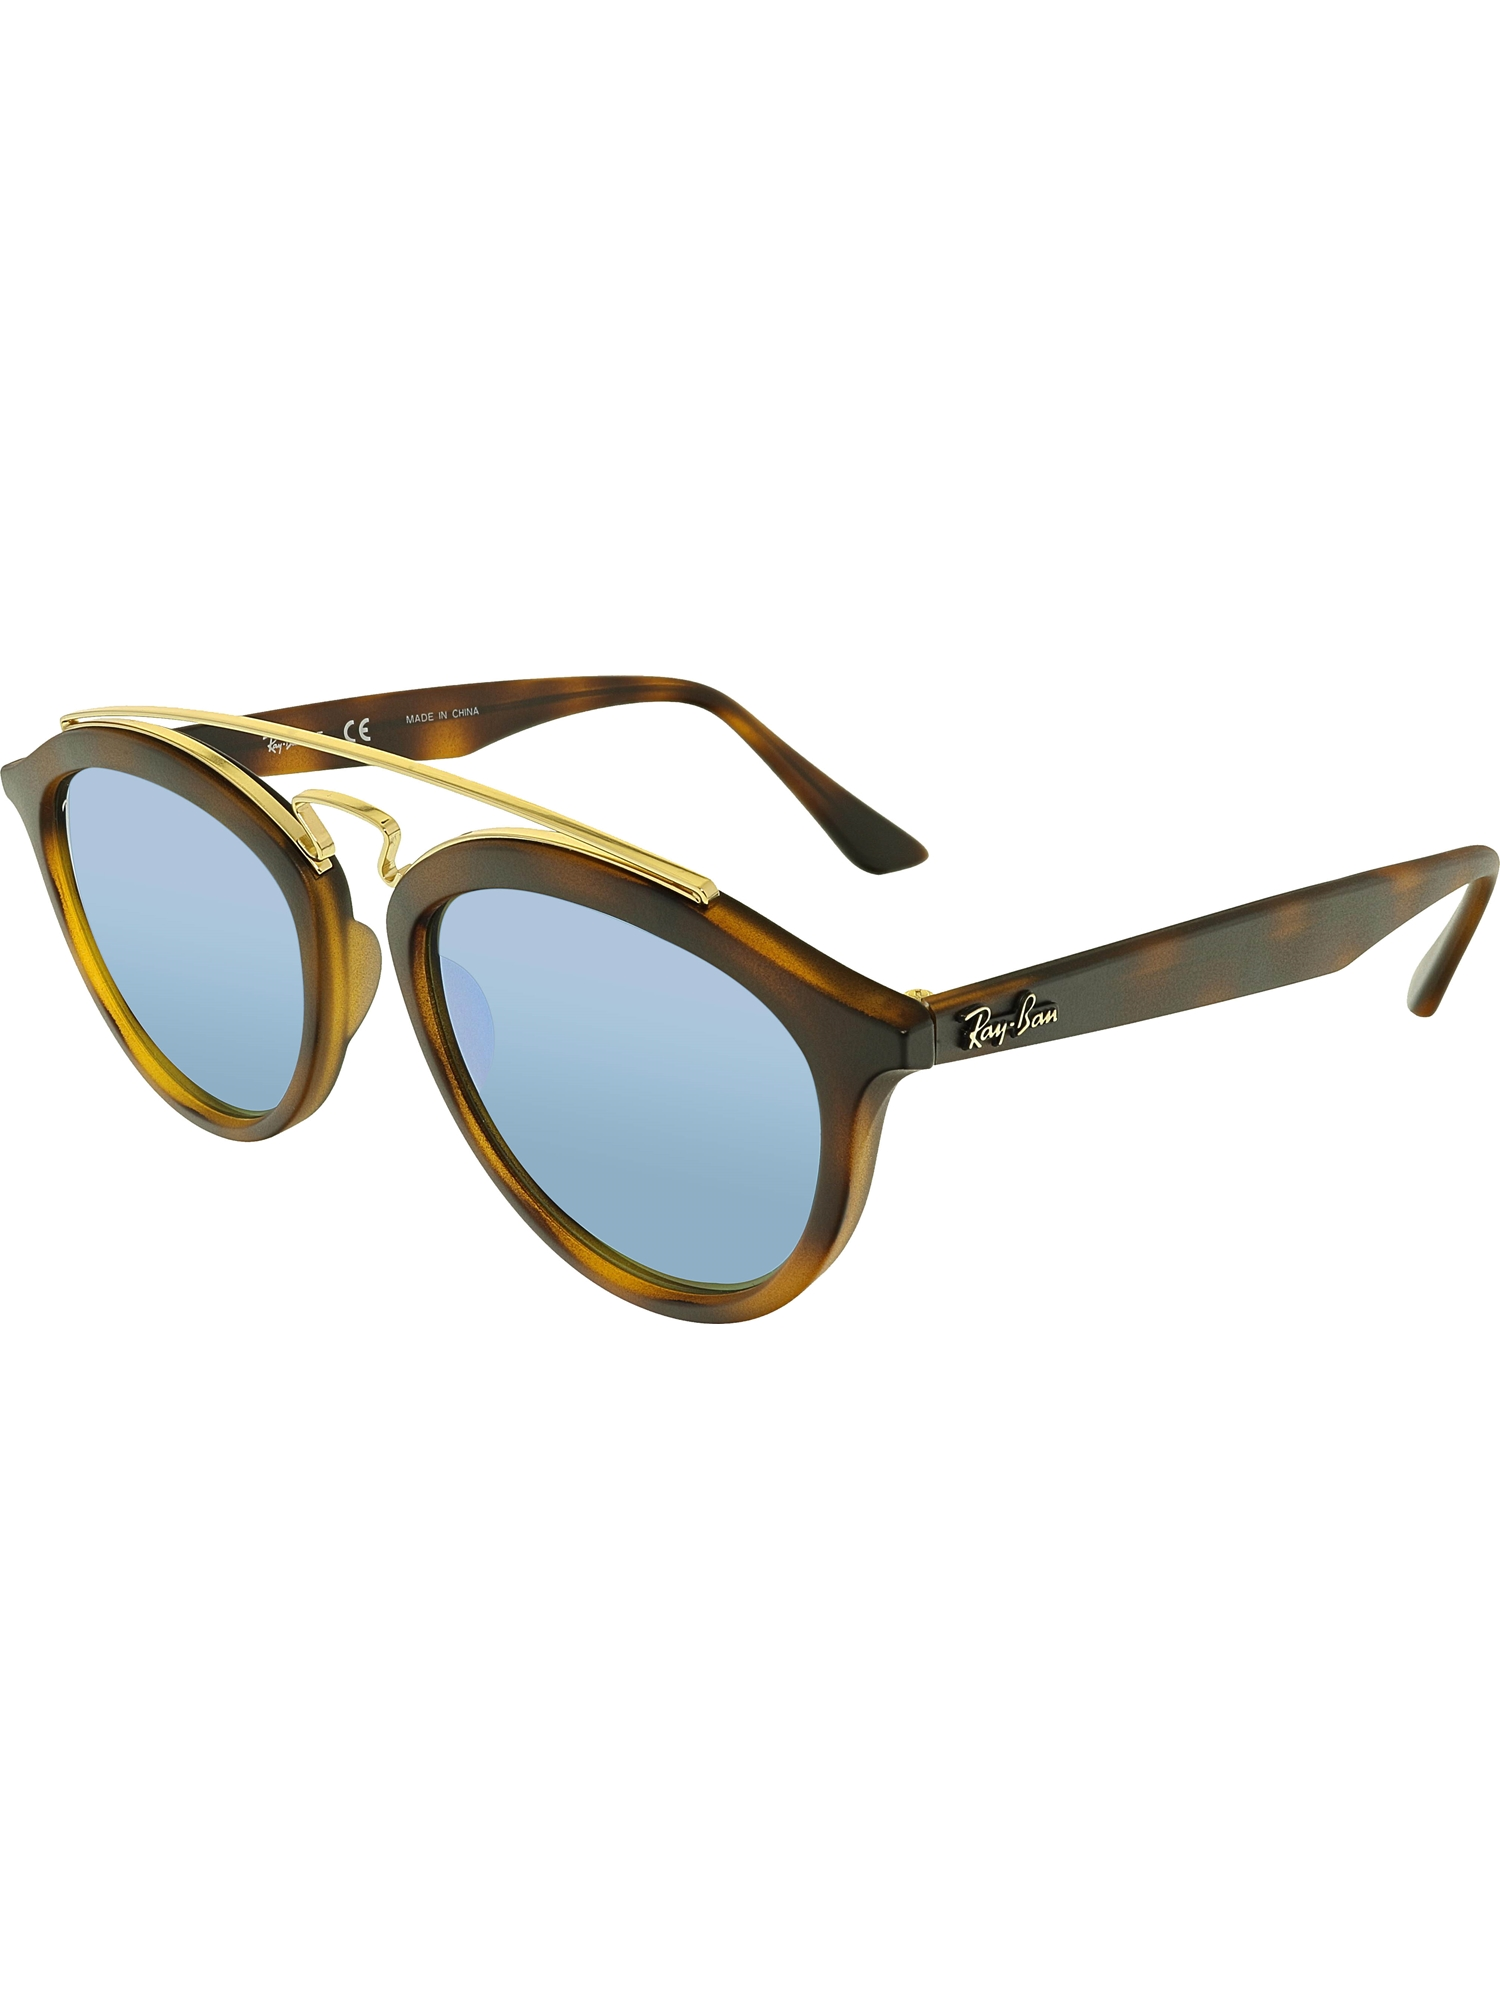 d621792014d Ray-Ban Mirrored Gatsby II RB4257-609255-53 Brown Round ...